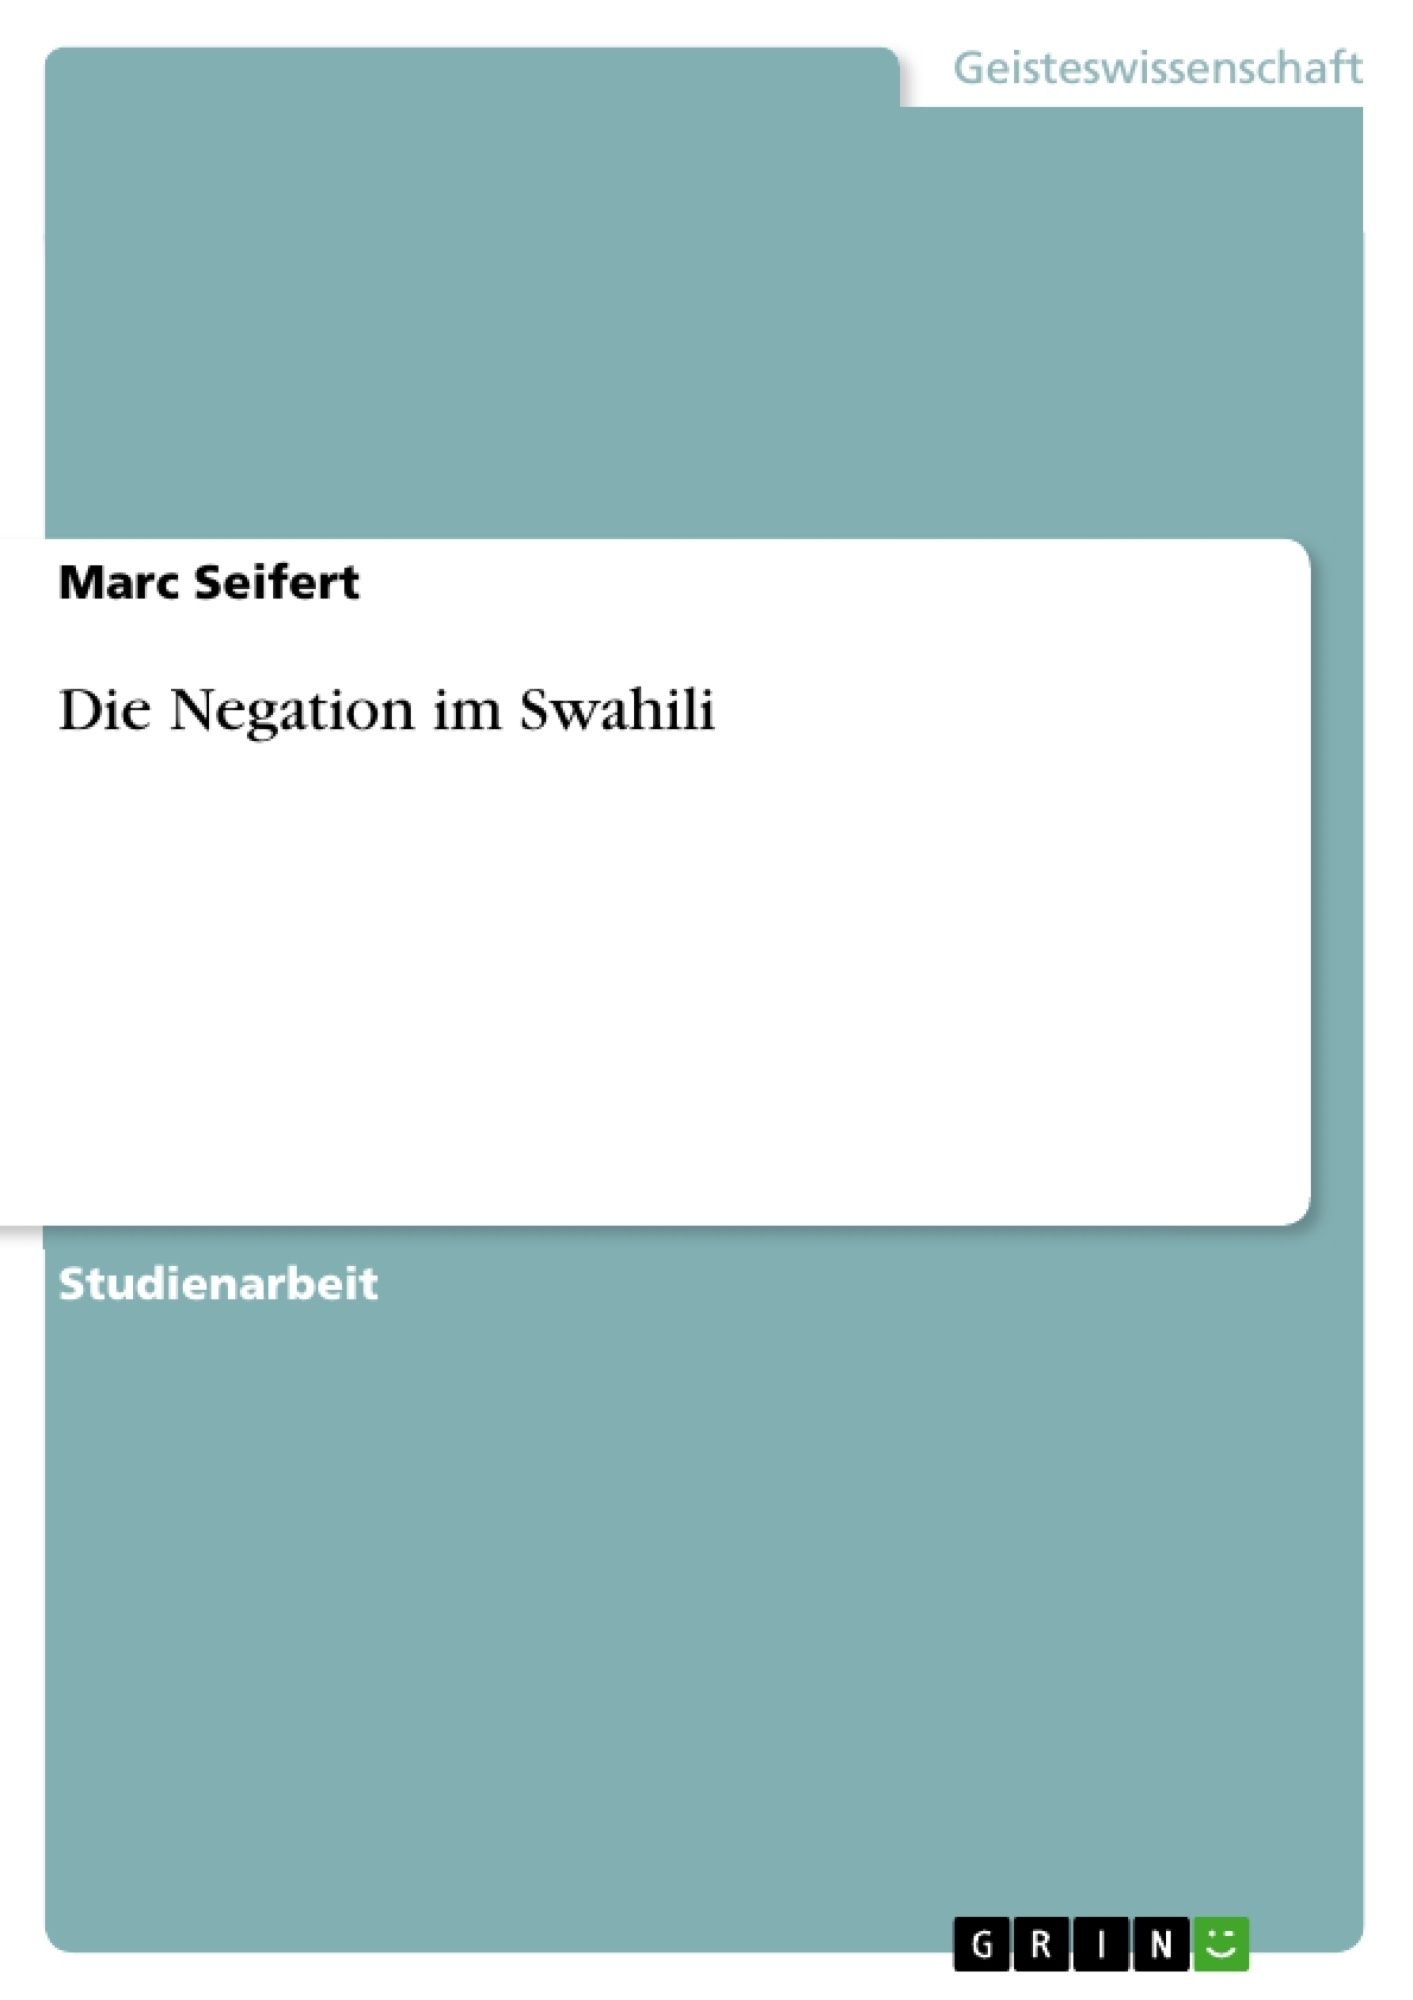 Titel: Die Negation im Swahili